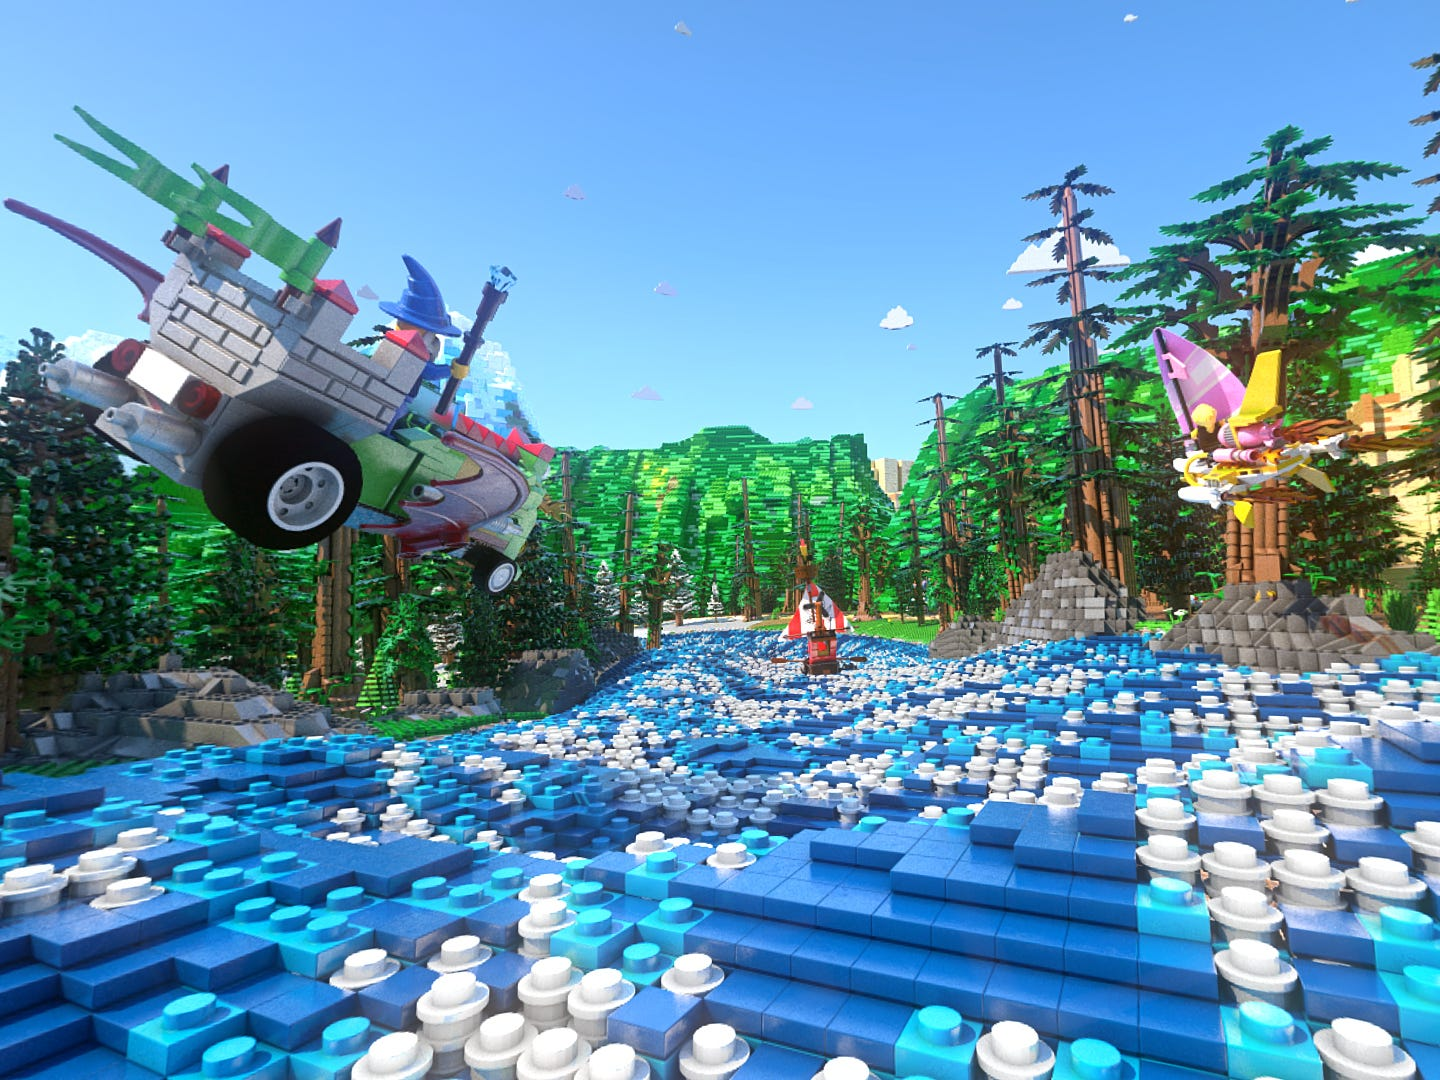 The Great Lego Race incorporates a virtual reality experience.